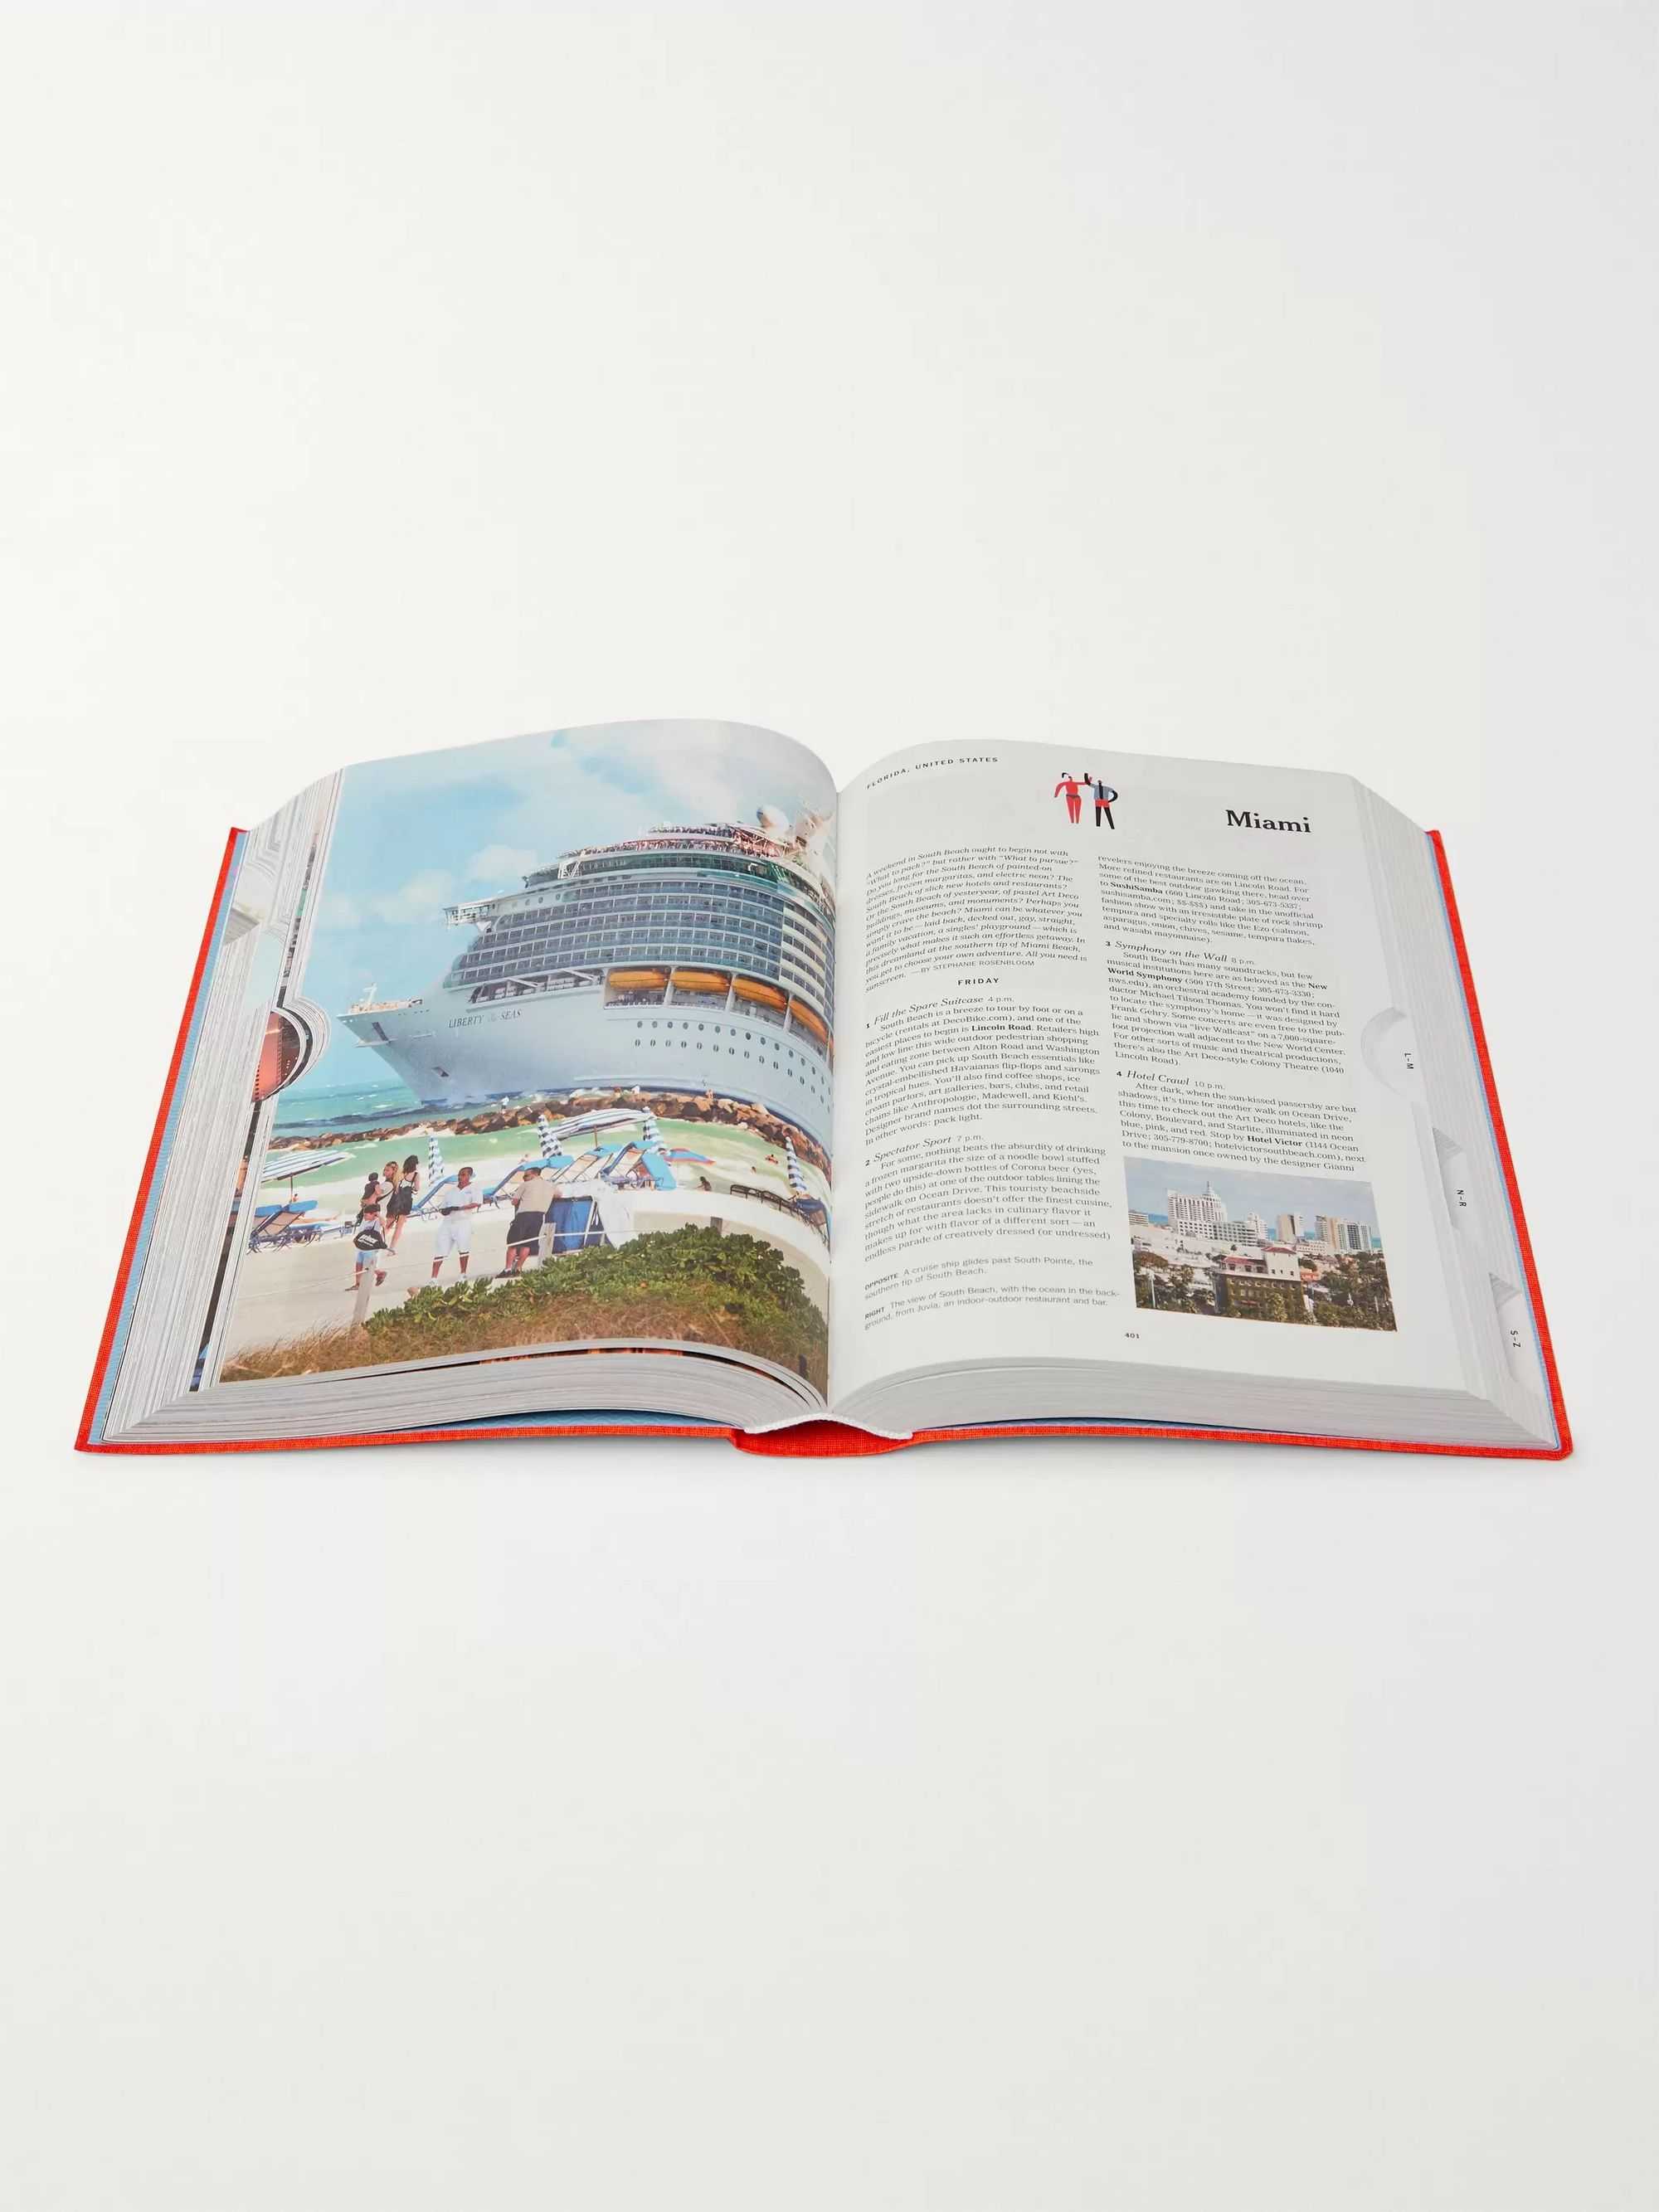 Taschen The New York Times, 36 Hours: World, 150 Cities from Abu Dhabi to Zurich Flexicloth Book